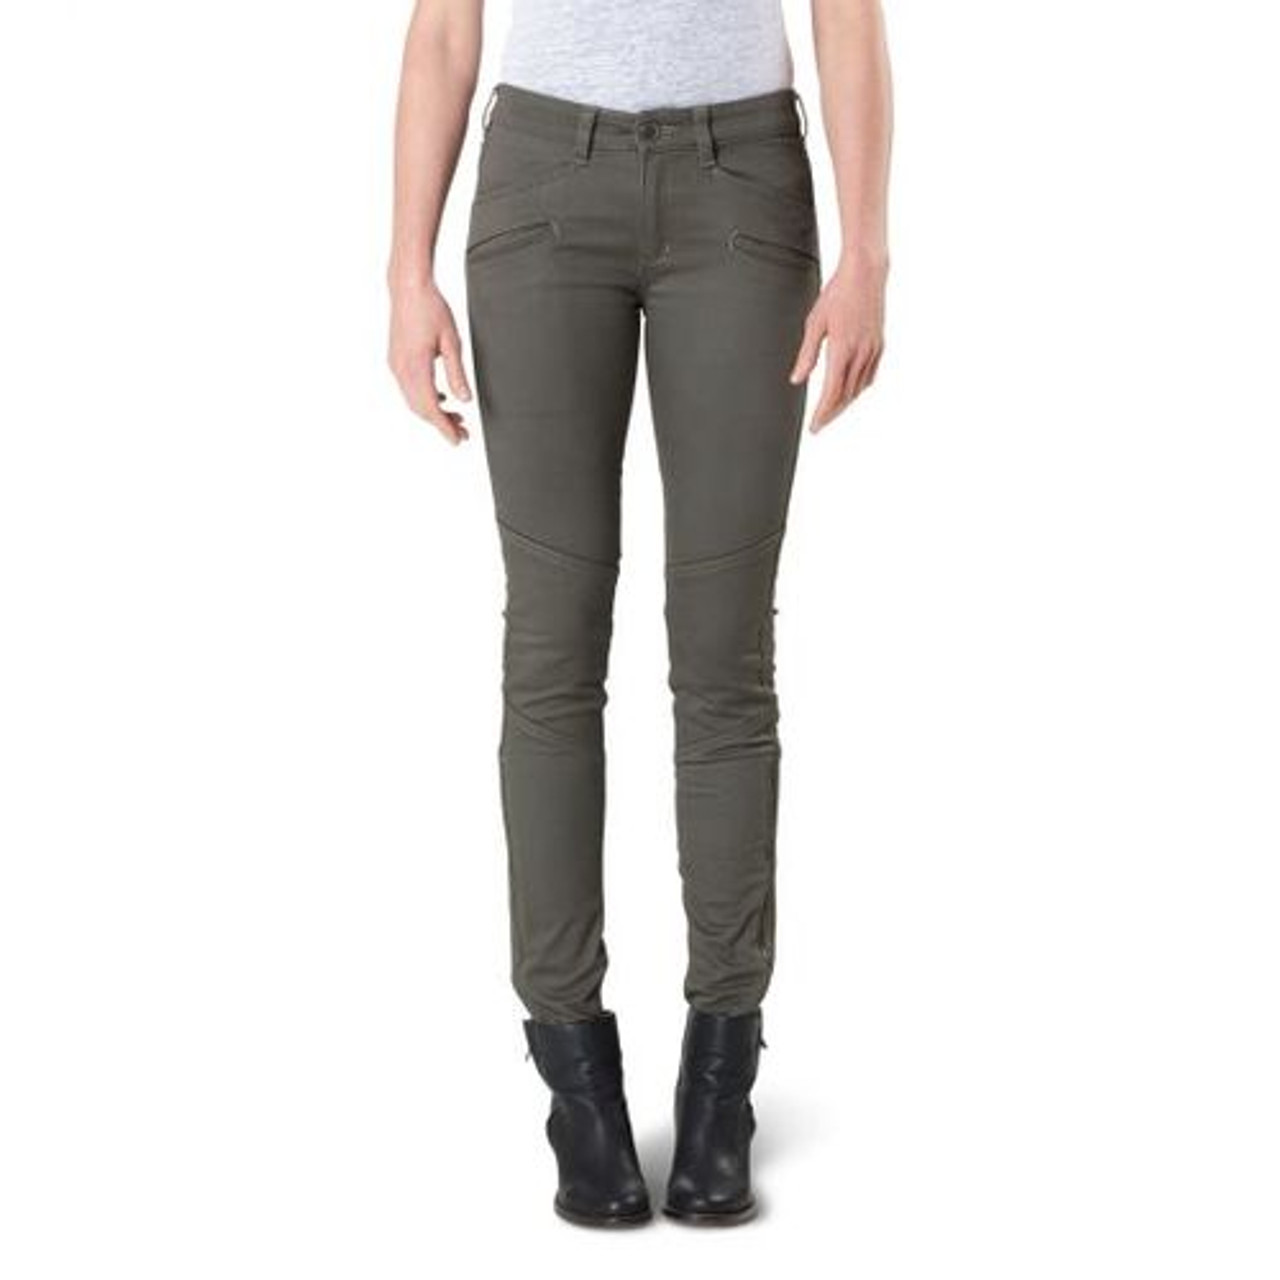 5.11 Tactical 64019 Women's Wyldcat Tactical Cargo Pants, Slim/Athletic Fit, Ammo Pocket, Cotton/Polyester/Spandex, Available in Rosewood, Black, Khaki, or Grenade